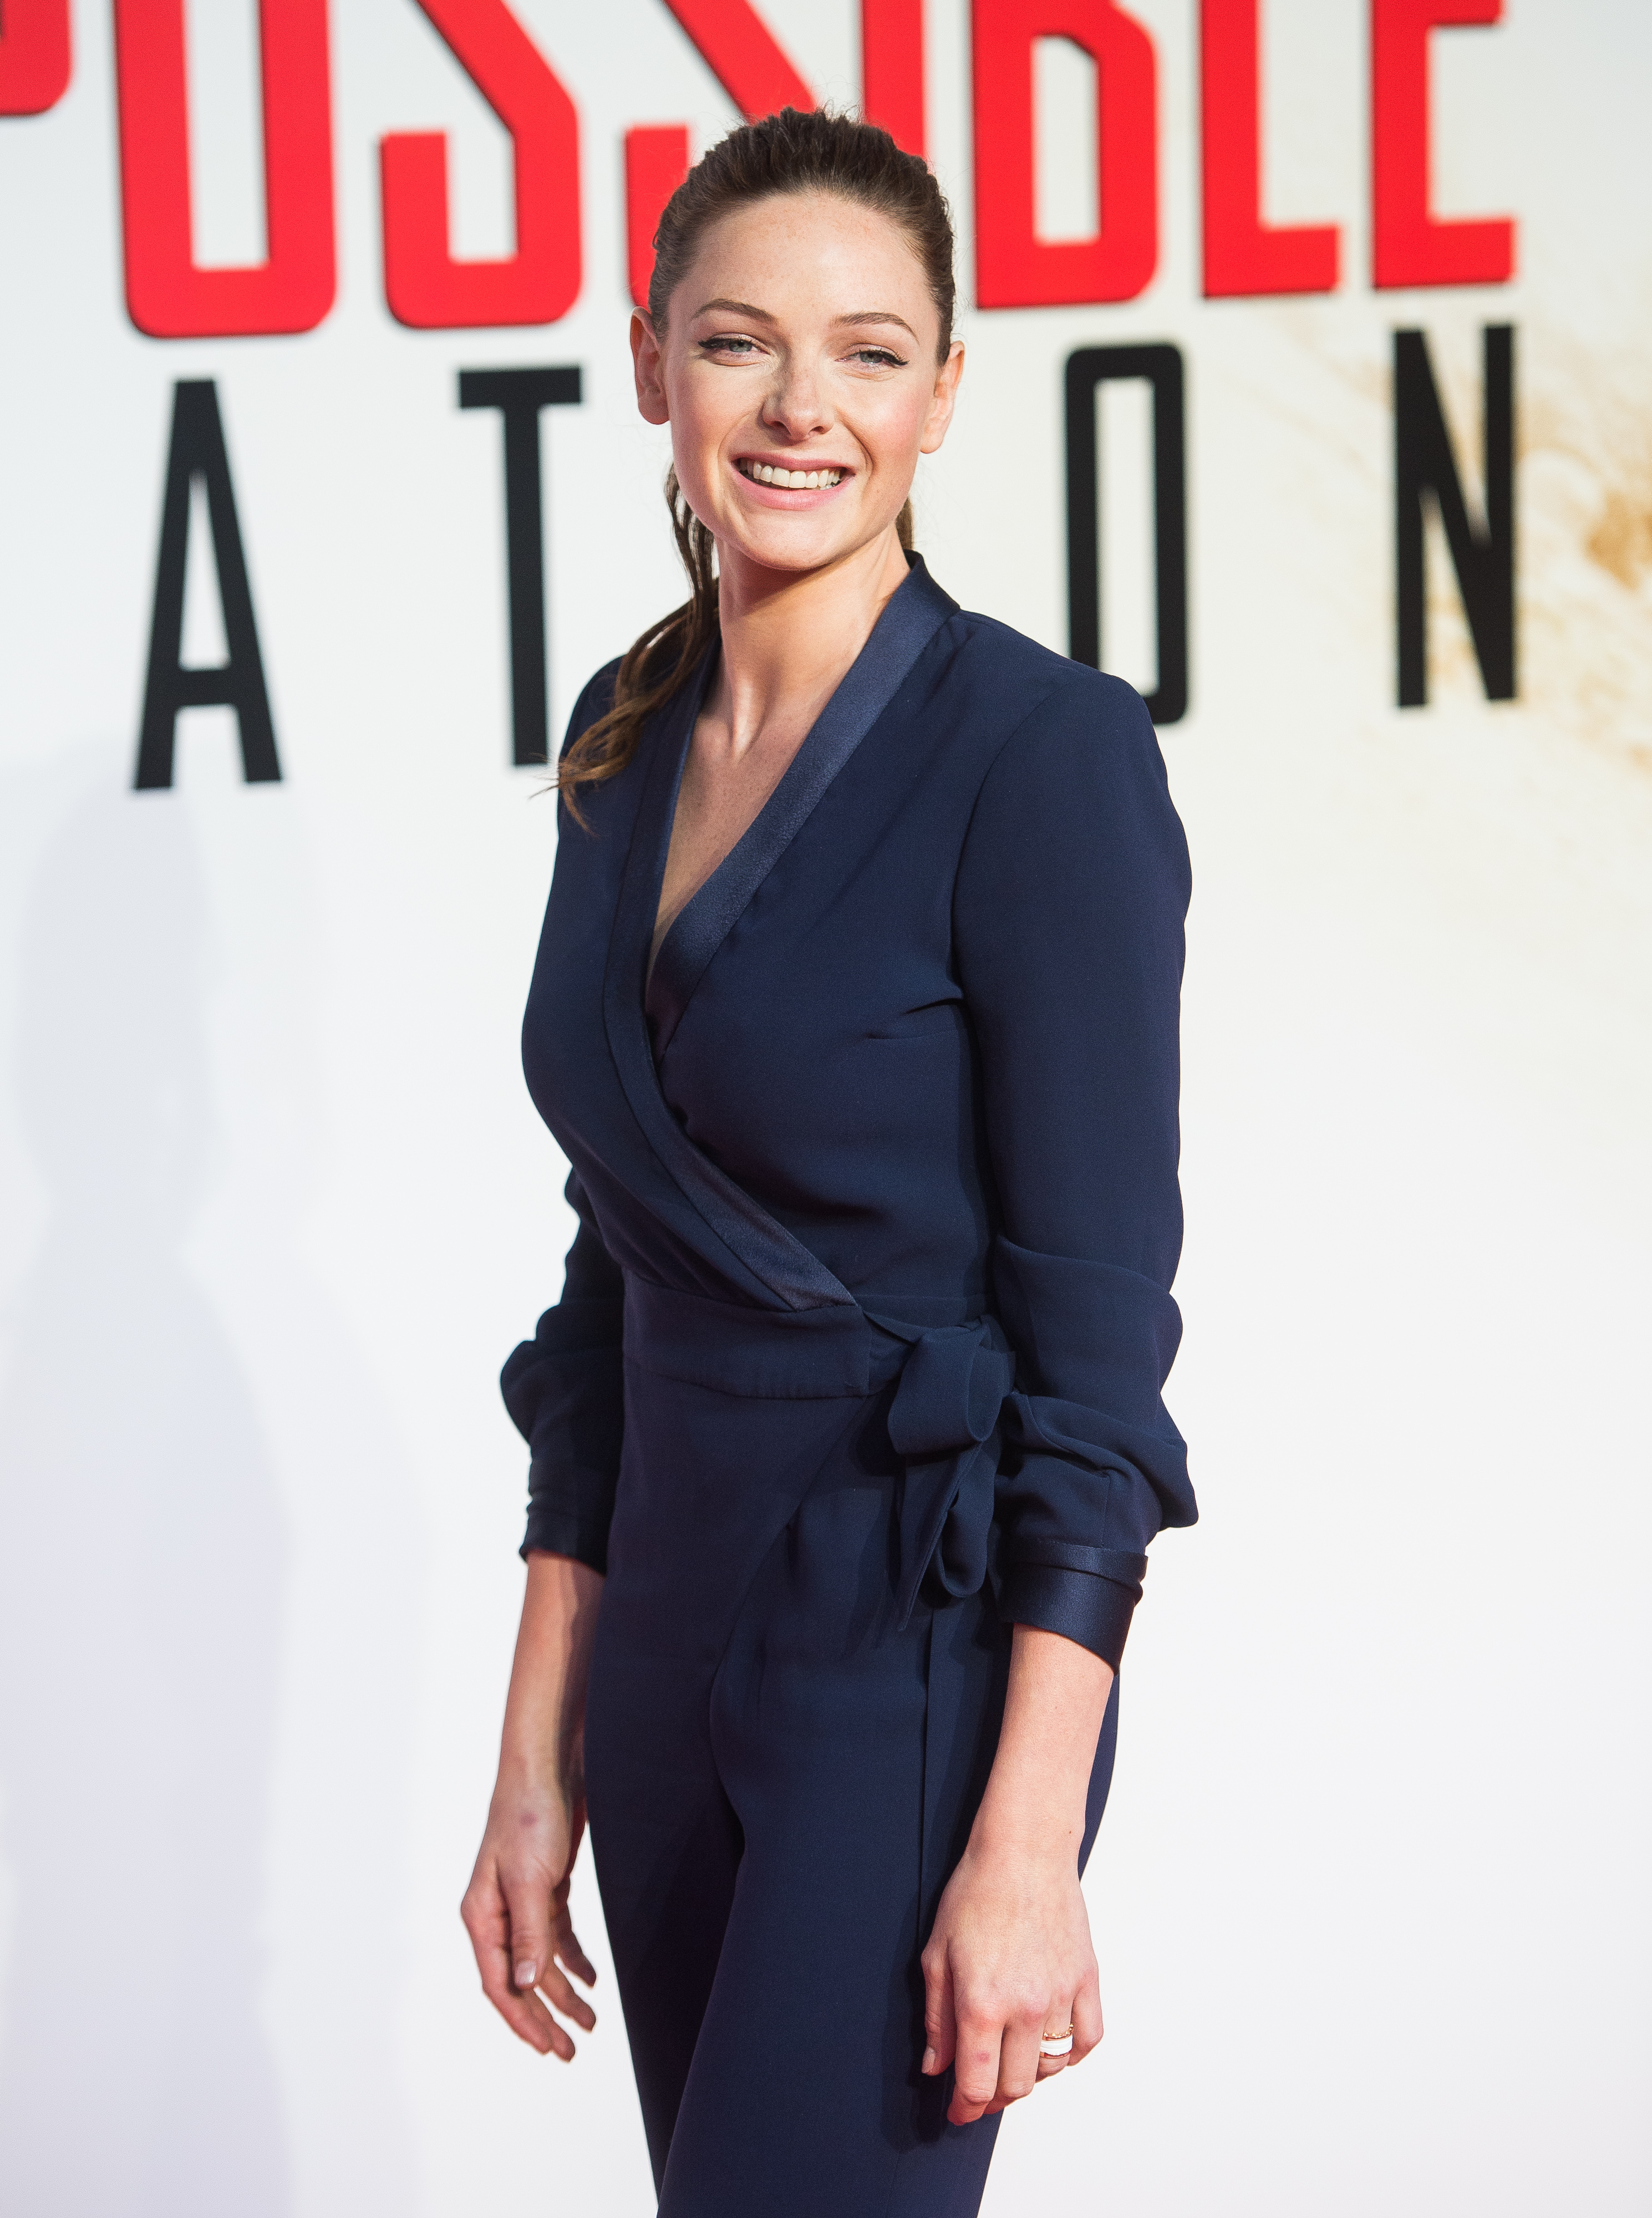 Https Www Lifeandstylemag Com Posts Pregnant Blake Lively And